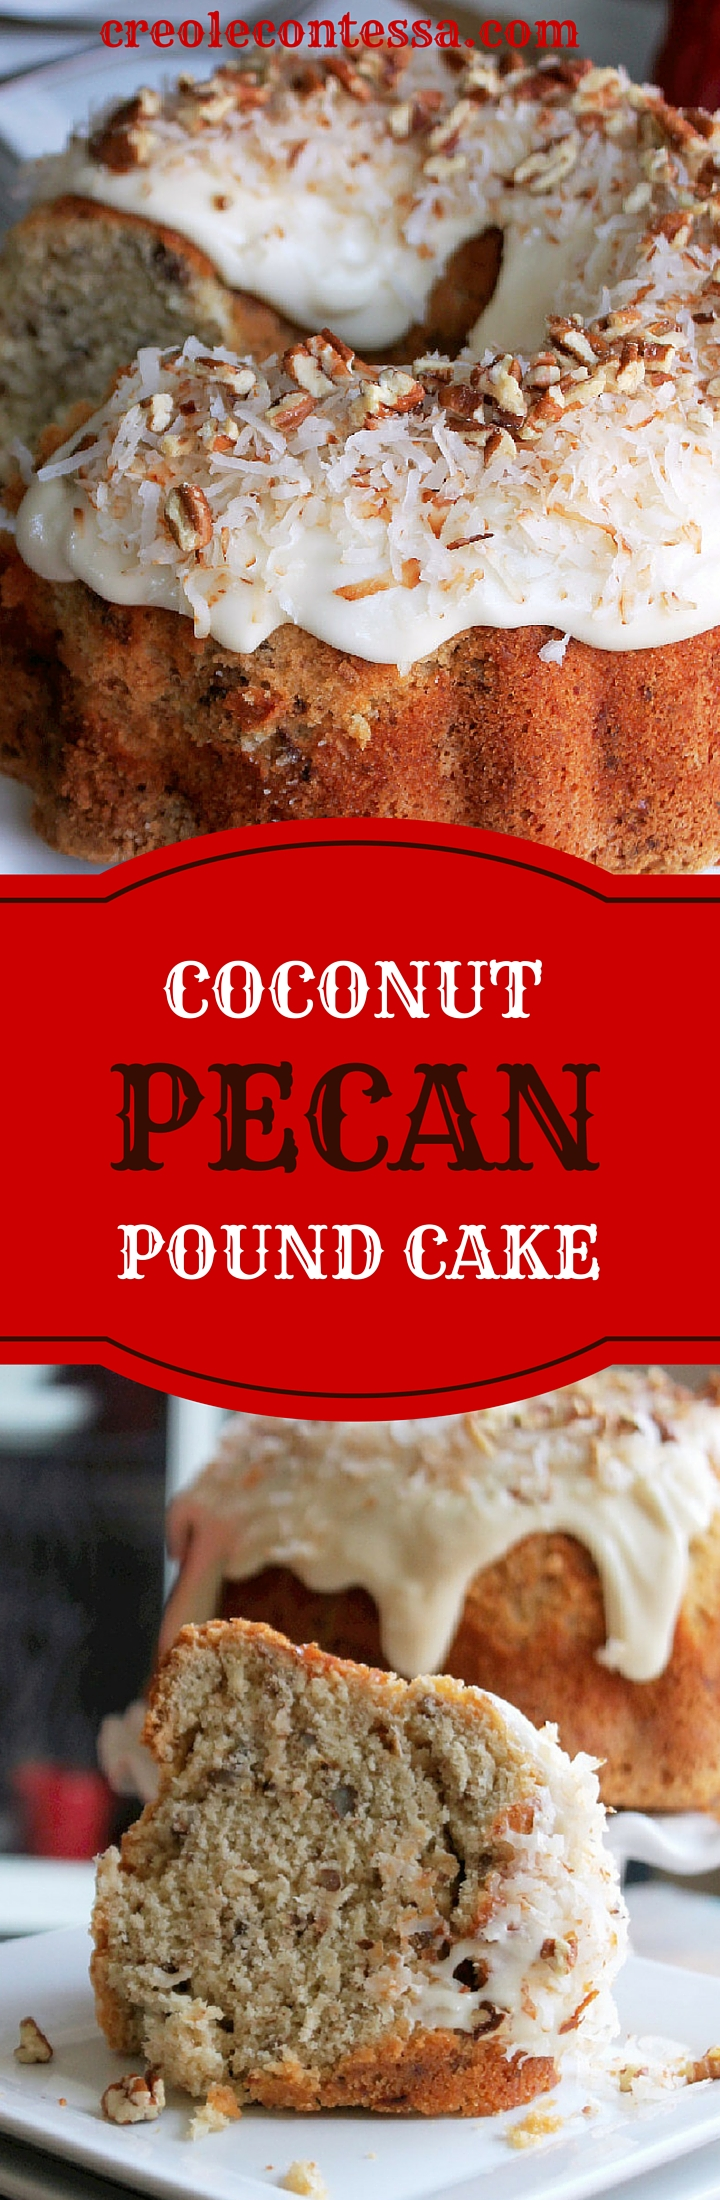 Ounce Pound Cake Pan